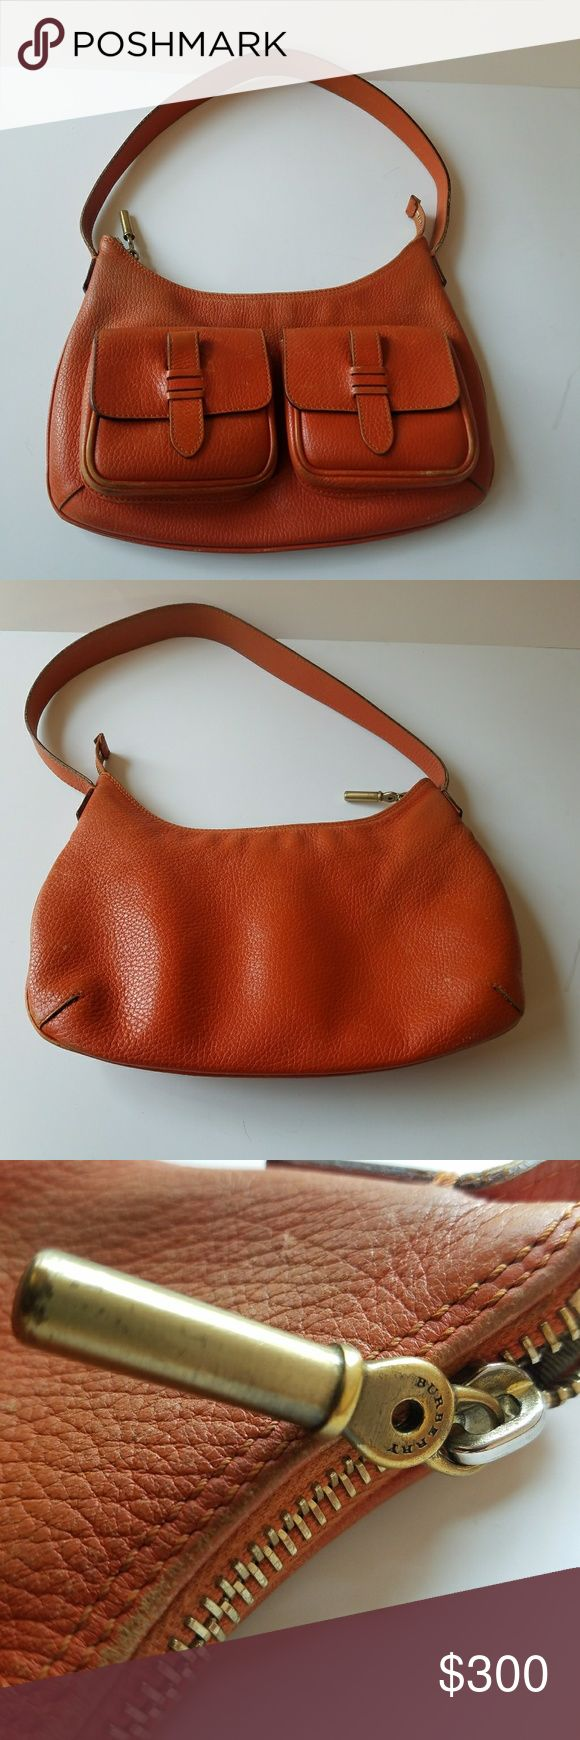 Burberry Orange Bag Here is your chance to own a Burberry Bag at an affordable price.  This bag is in good used condition.   See photos and zoom in.  It is beautiful and has lots of life left!!! :) Burberry Bags Hobos